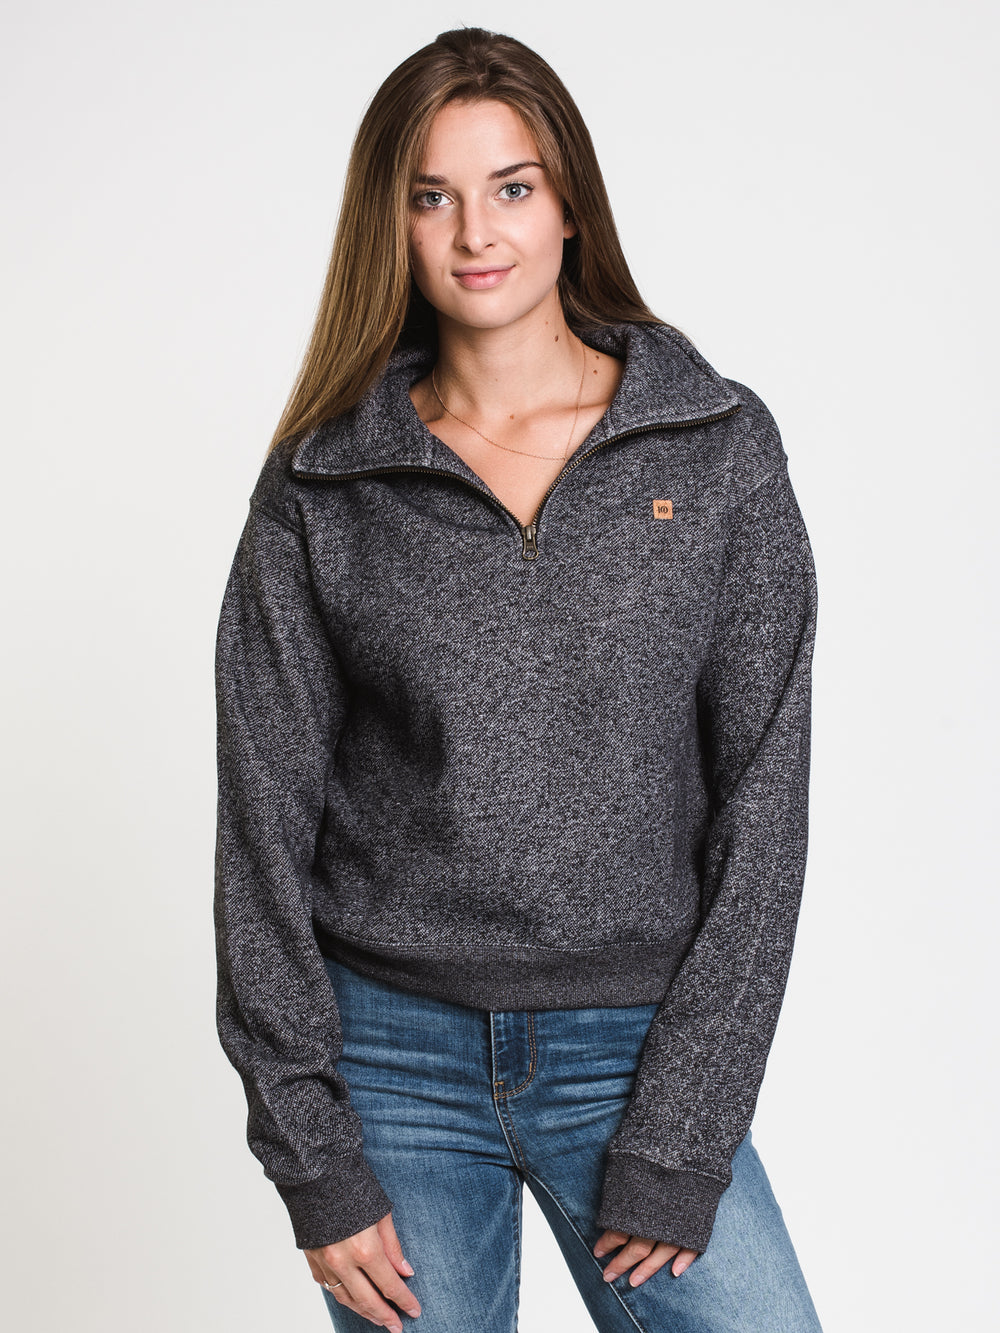 WOMENS BLCKD 1/4 ZIP CORK PTCH - HBK